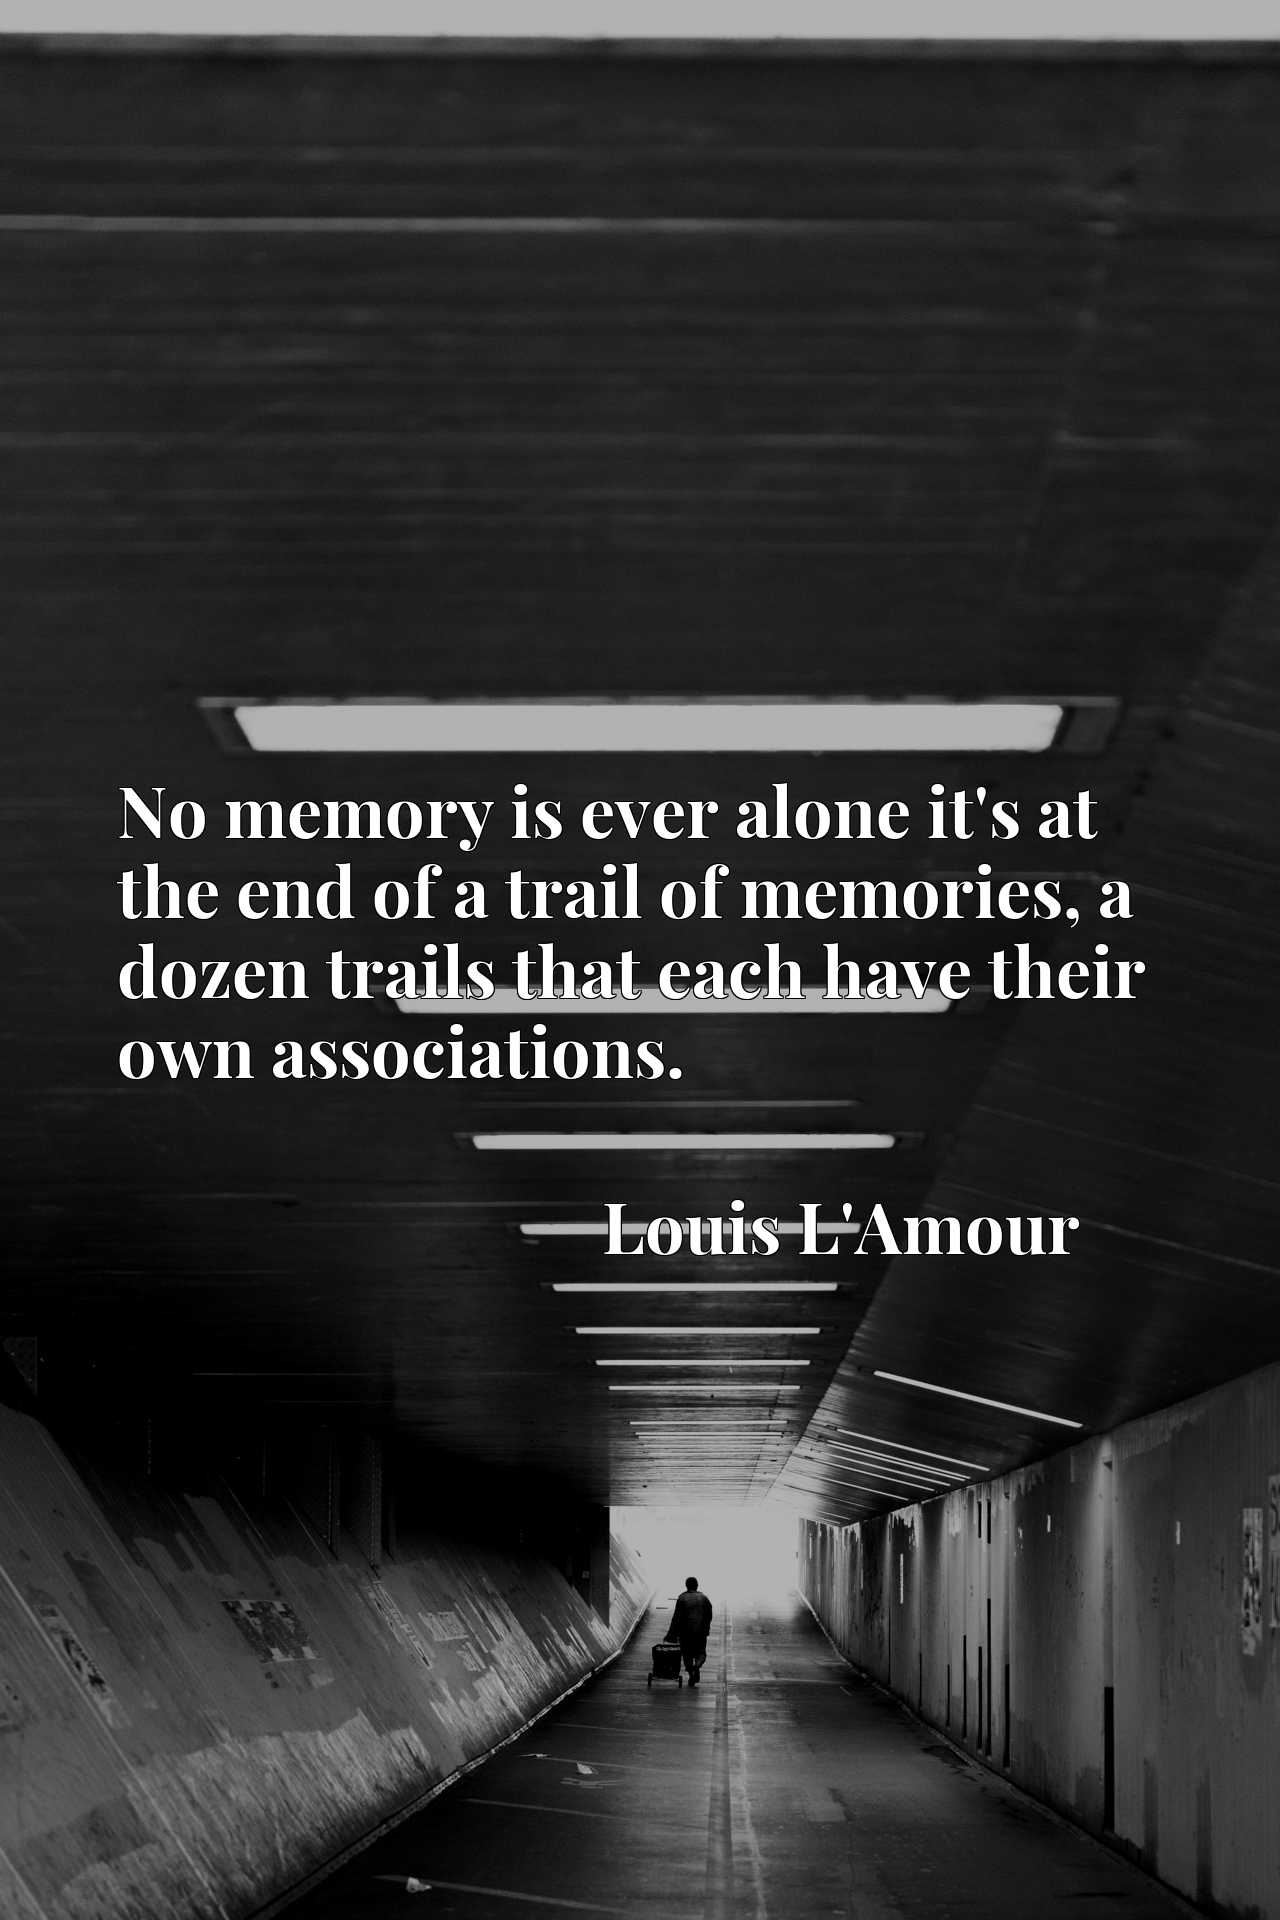 No memory is ever alone it's at the end of a trail of memories, a dozen trails that each have their own associations.